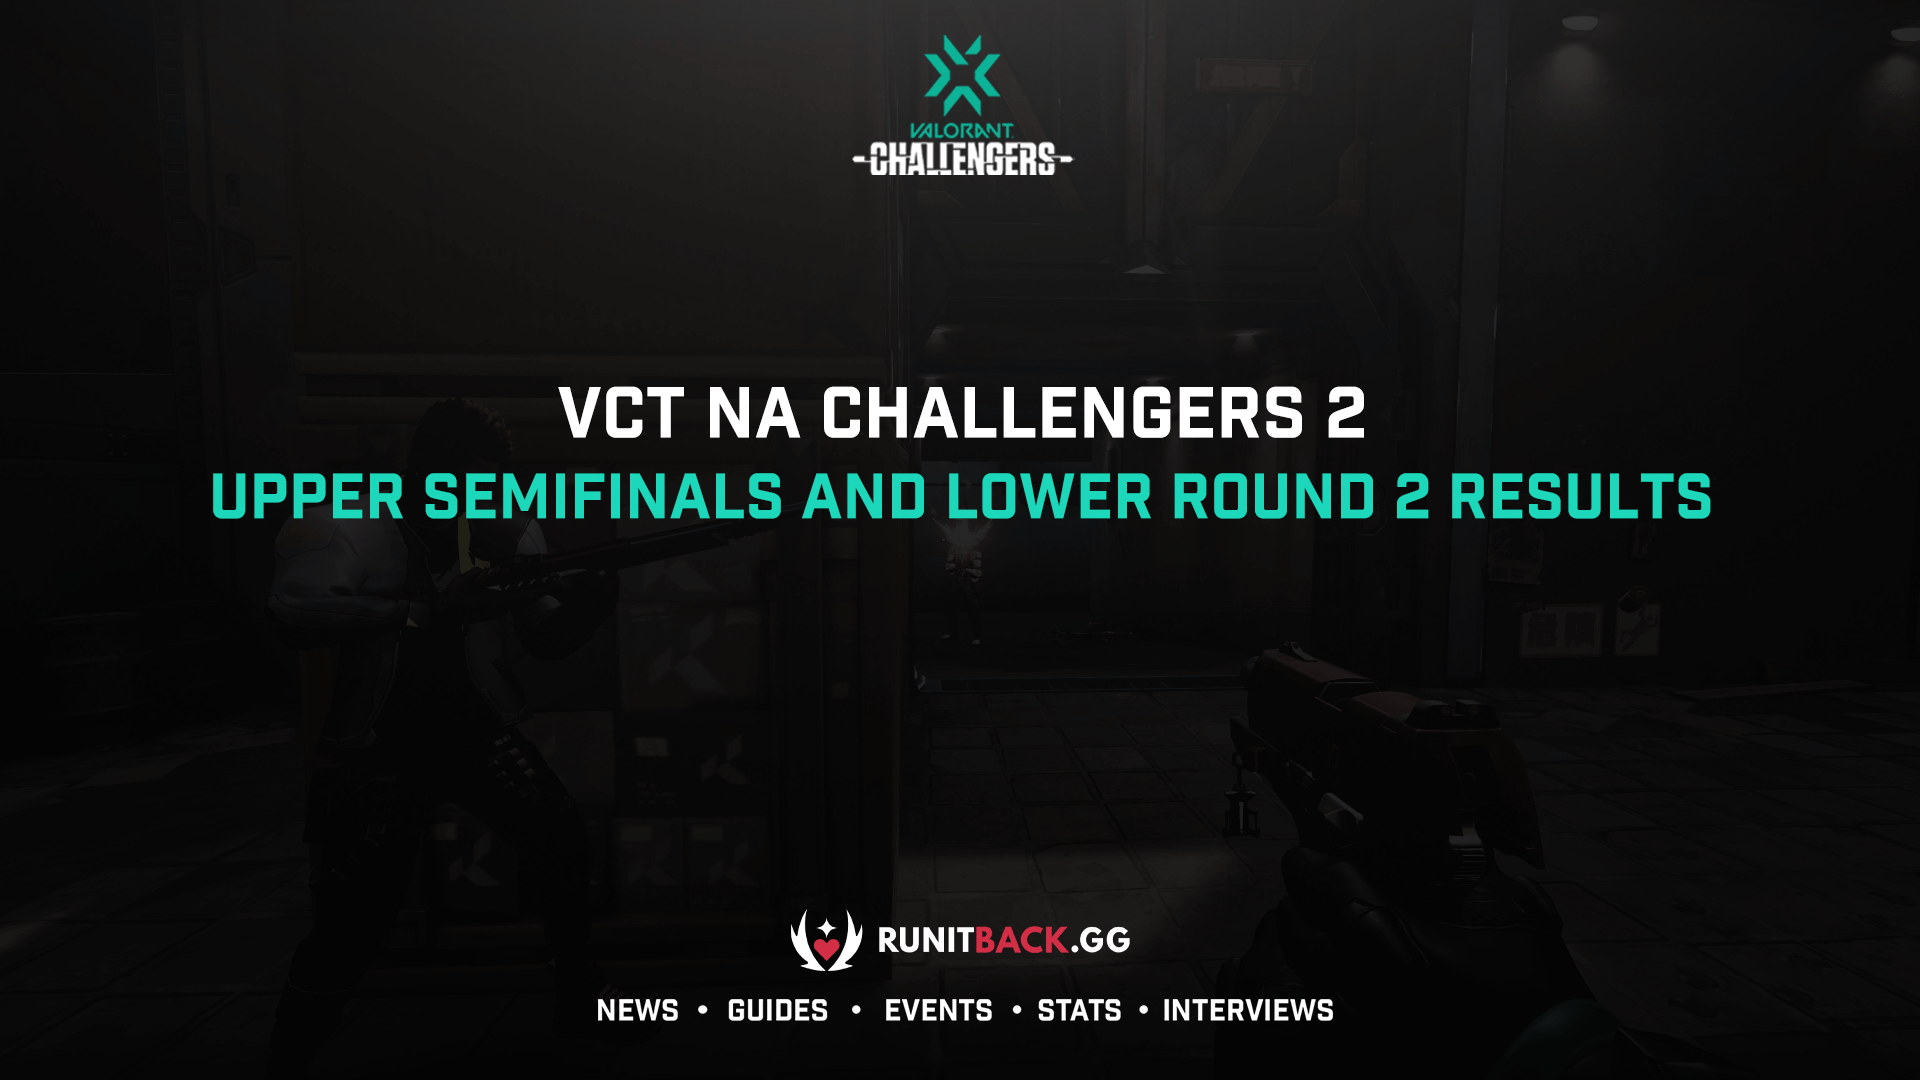 VCT NA Challengers 2 Main Event: Upper Semifinals and Lower Round 2 Results